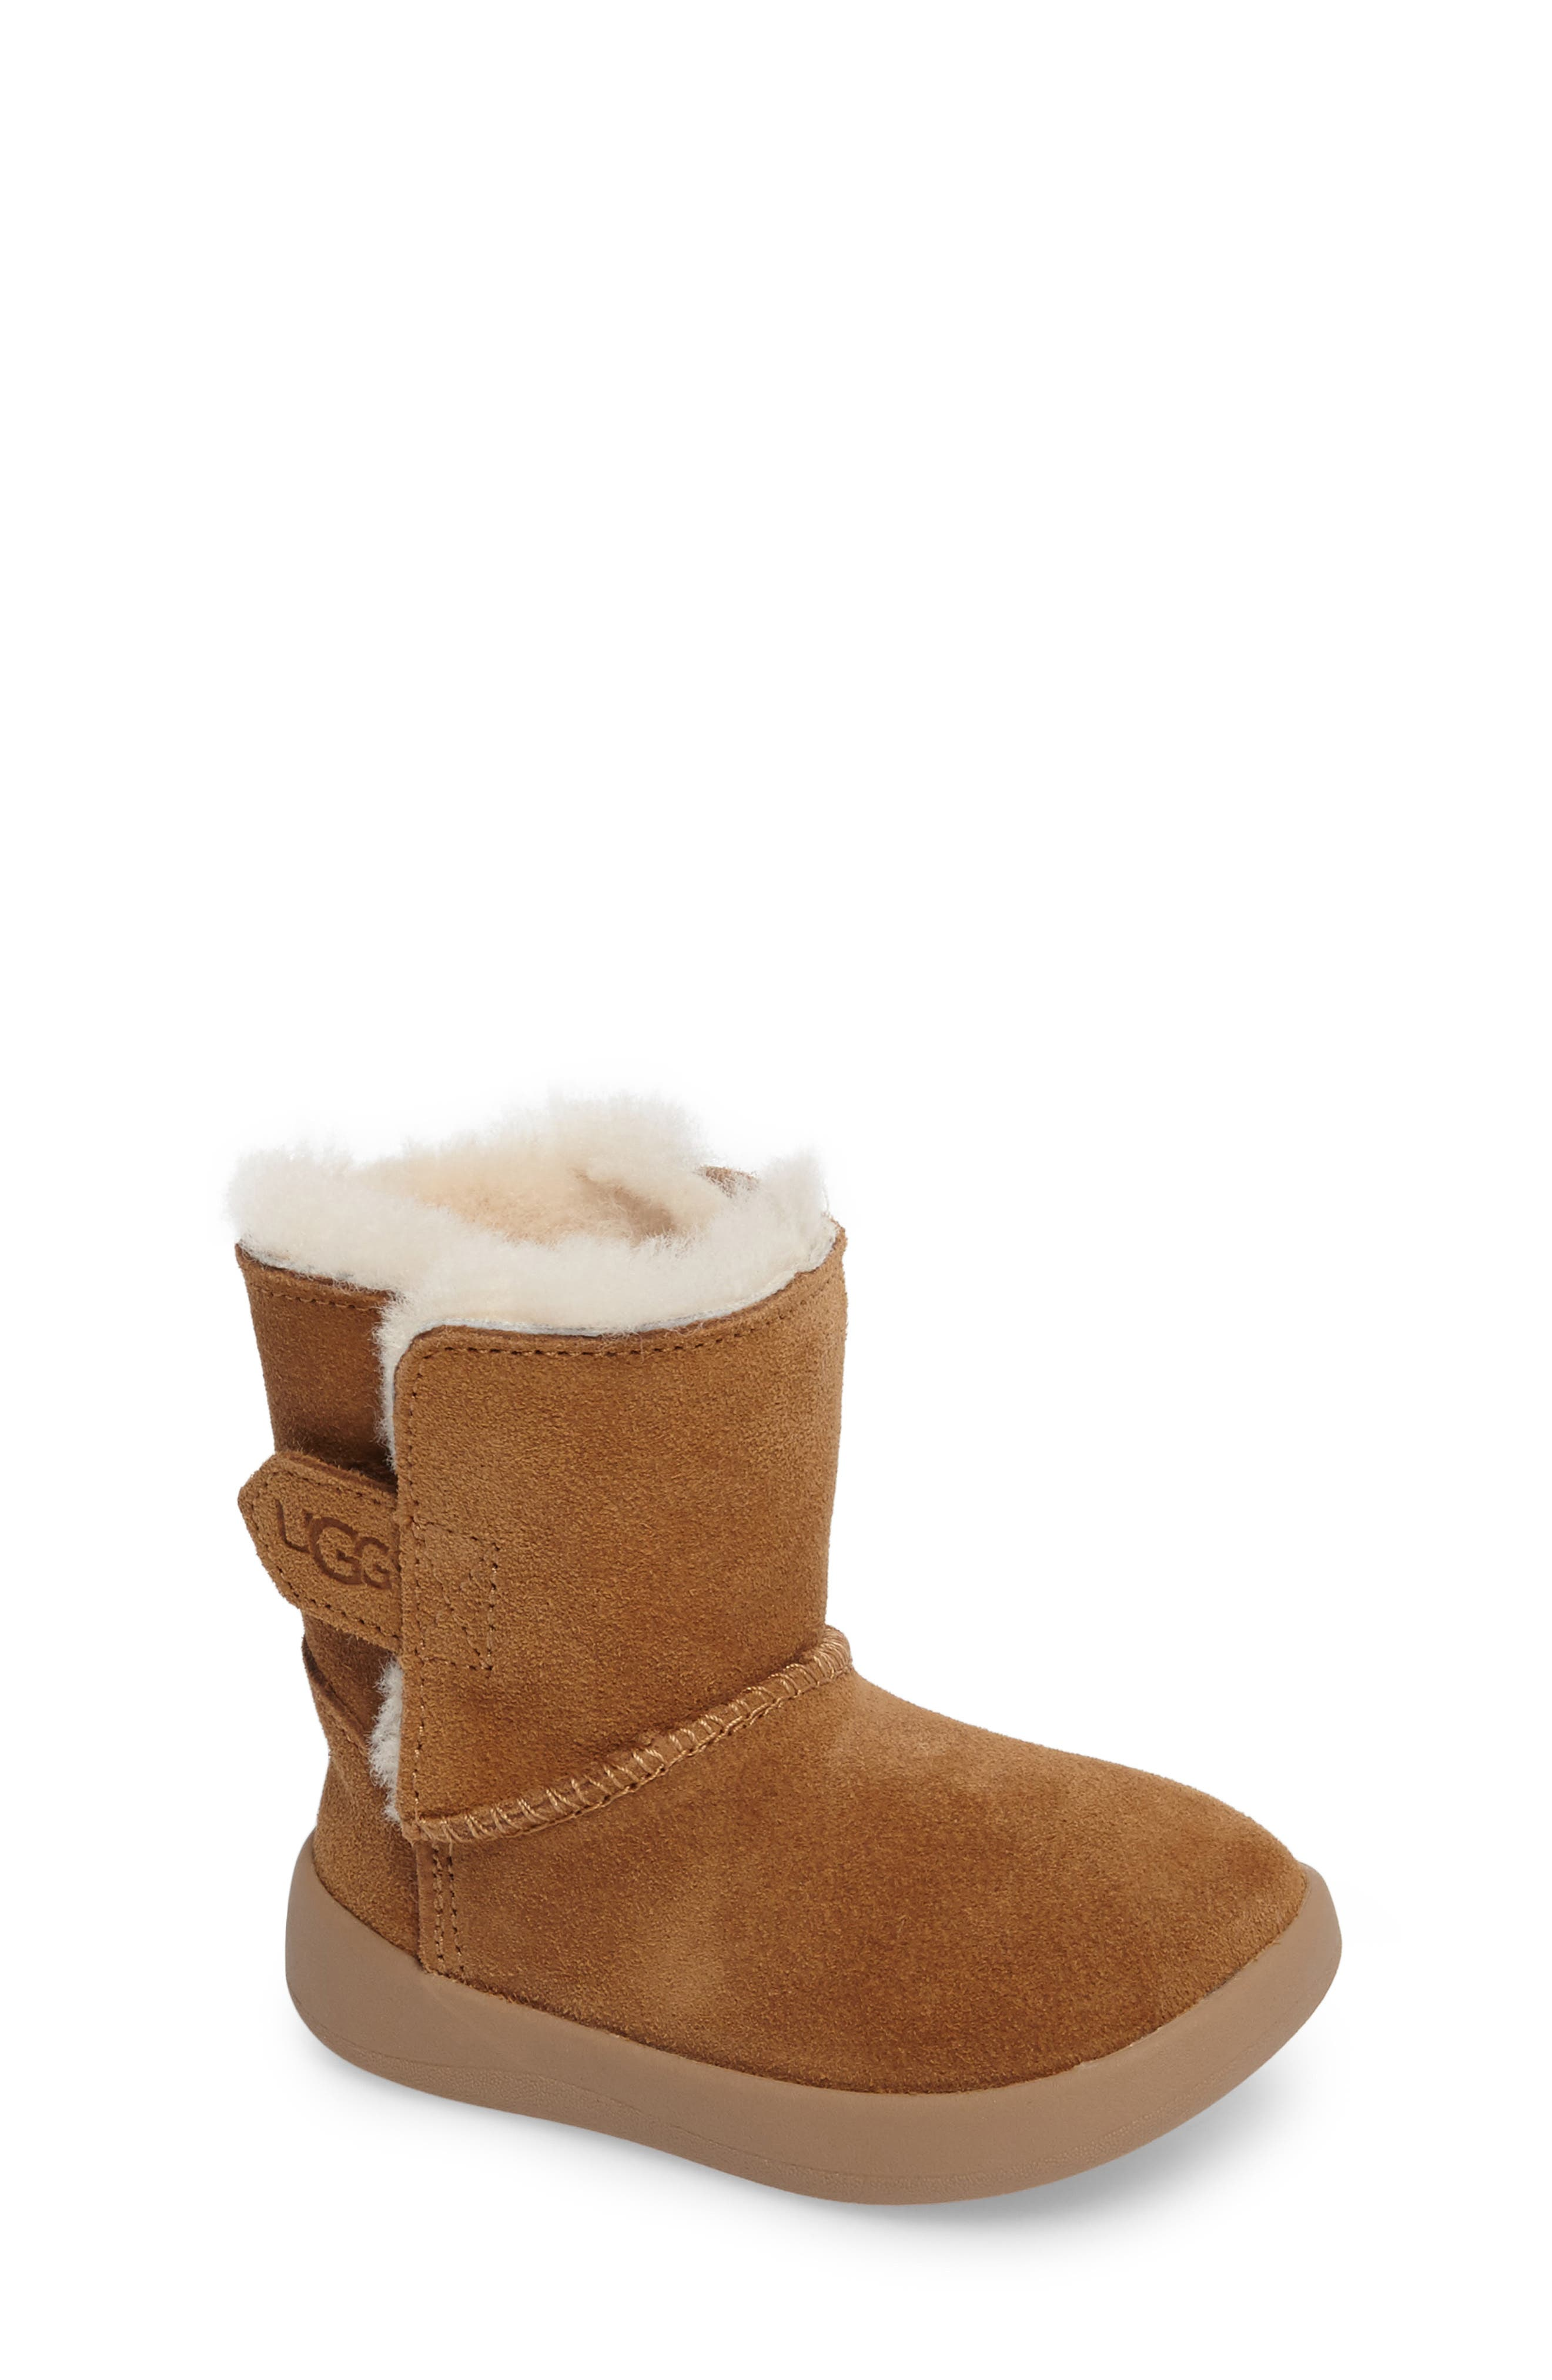 UGG<SUP>®</SUP>, Keelan Genuine Shearling Baby Boot, Main thumbnail 1, color, CHESTNUT BROWN